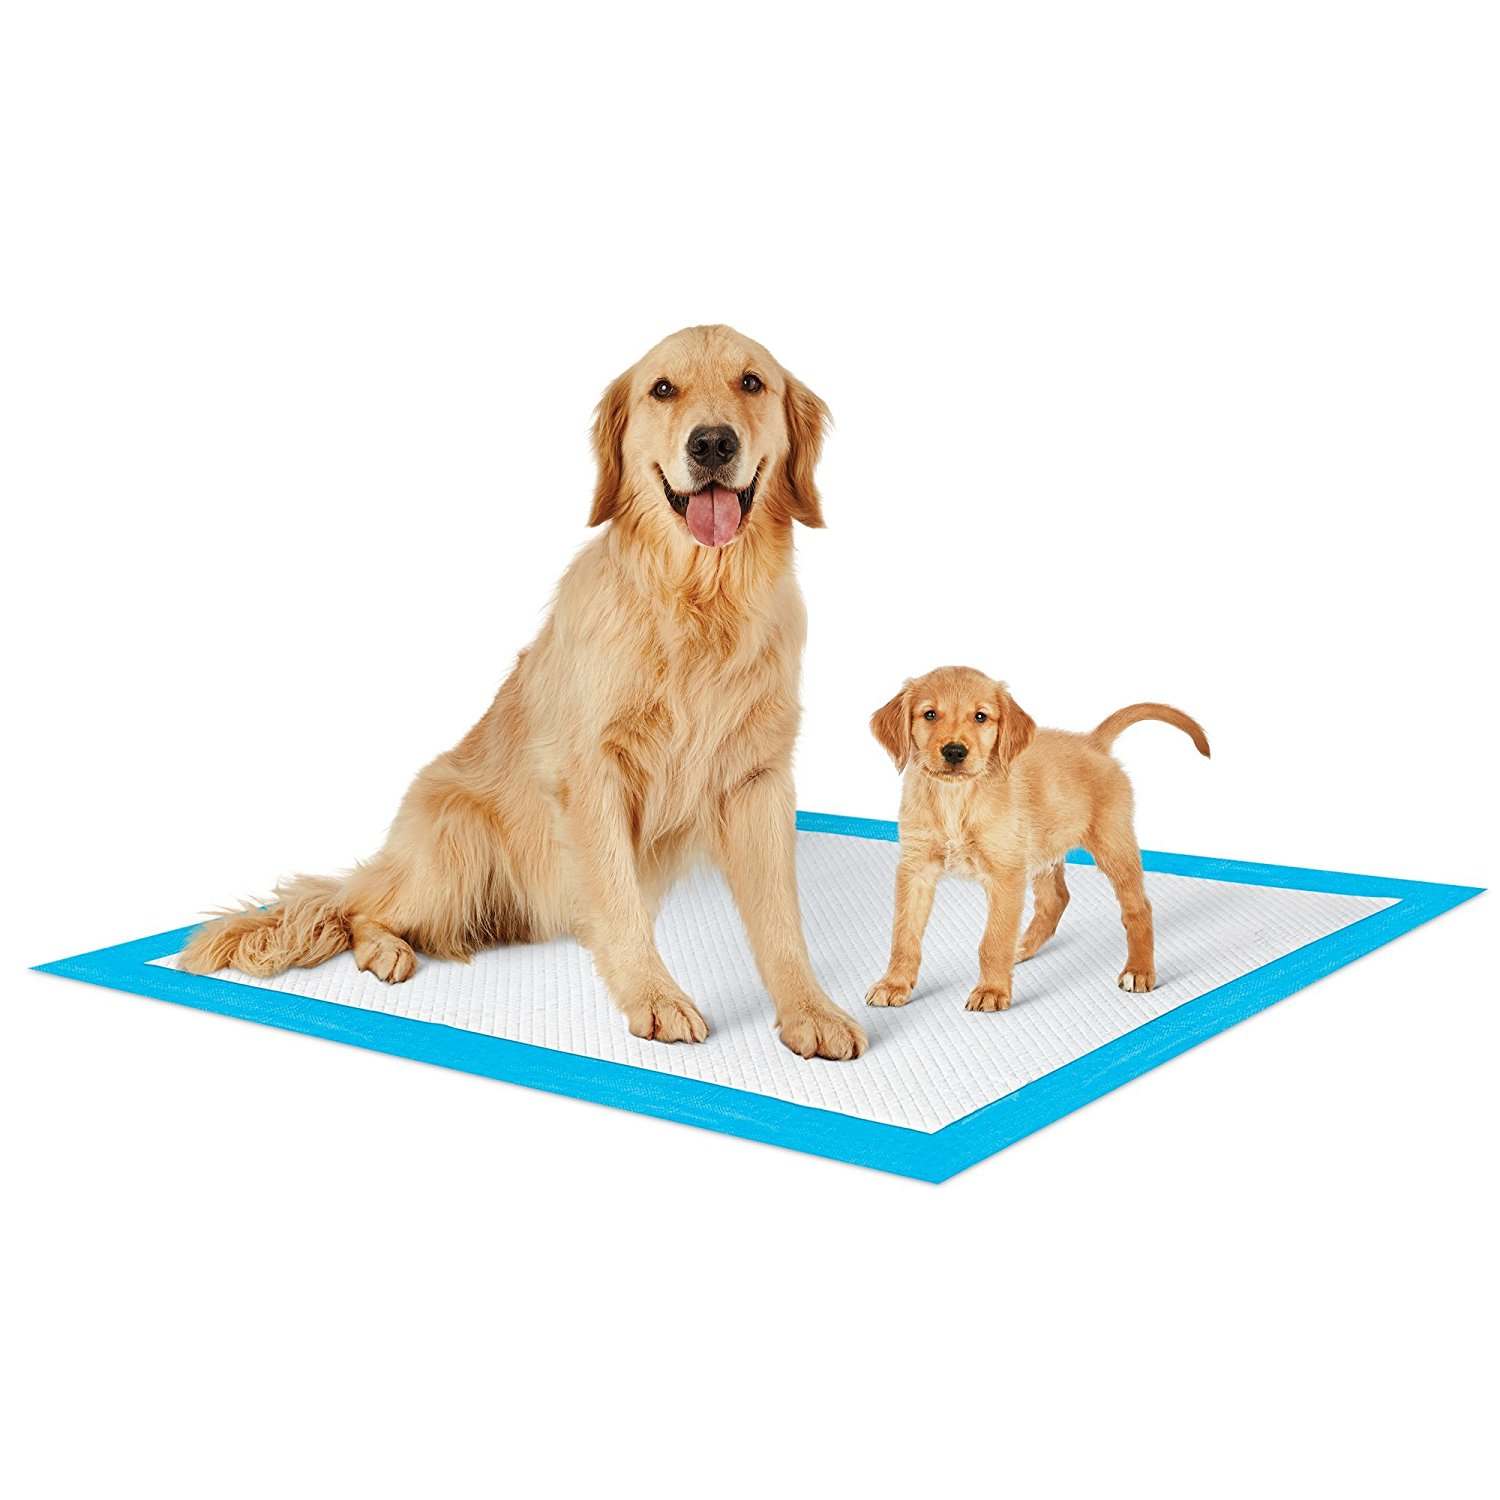 Petsworld heavy absorbent puppy training pads, 28 in x 34 in, 300 count